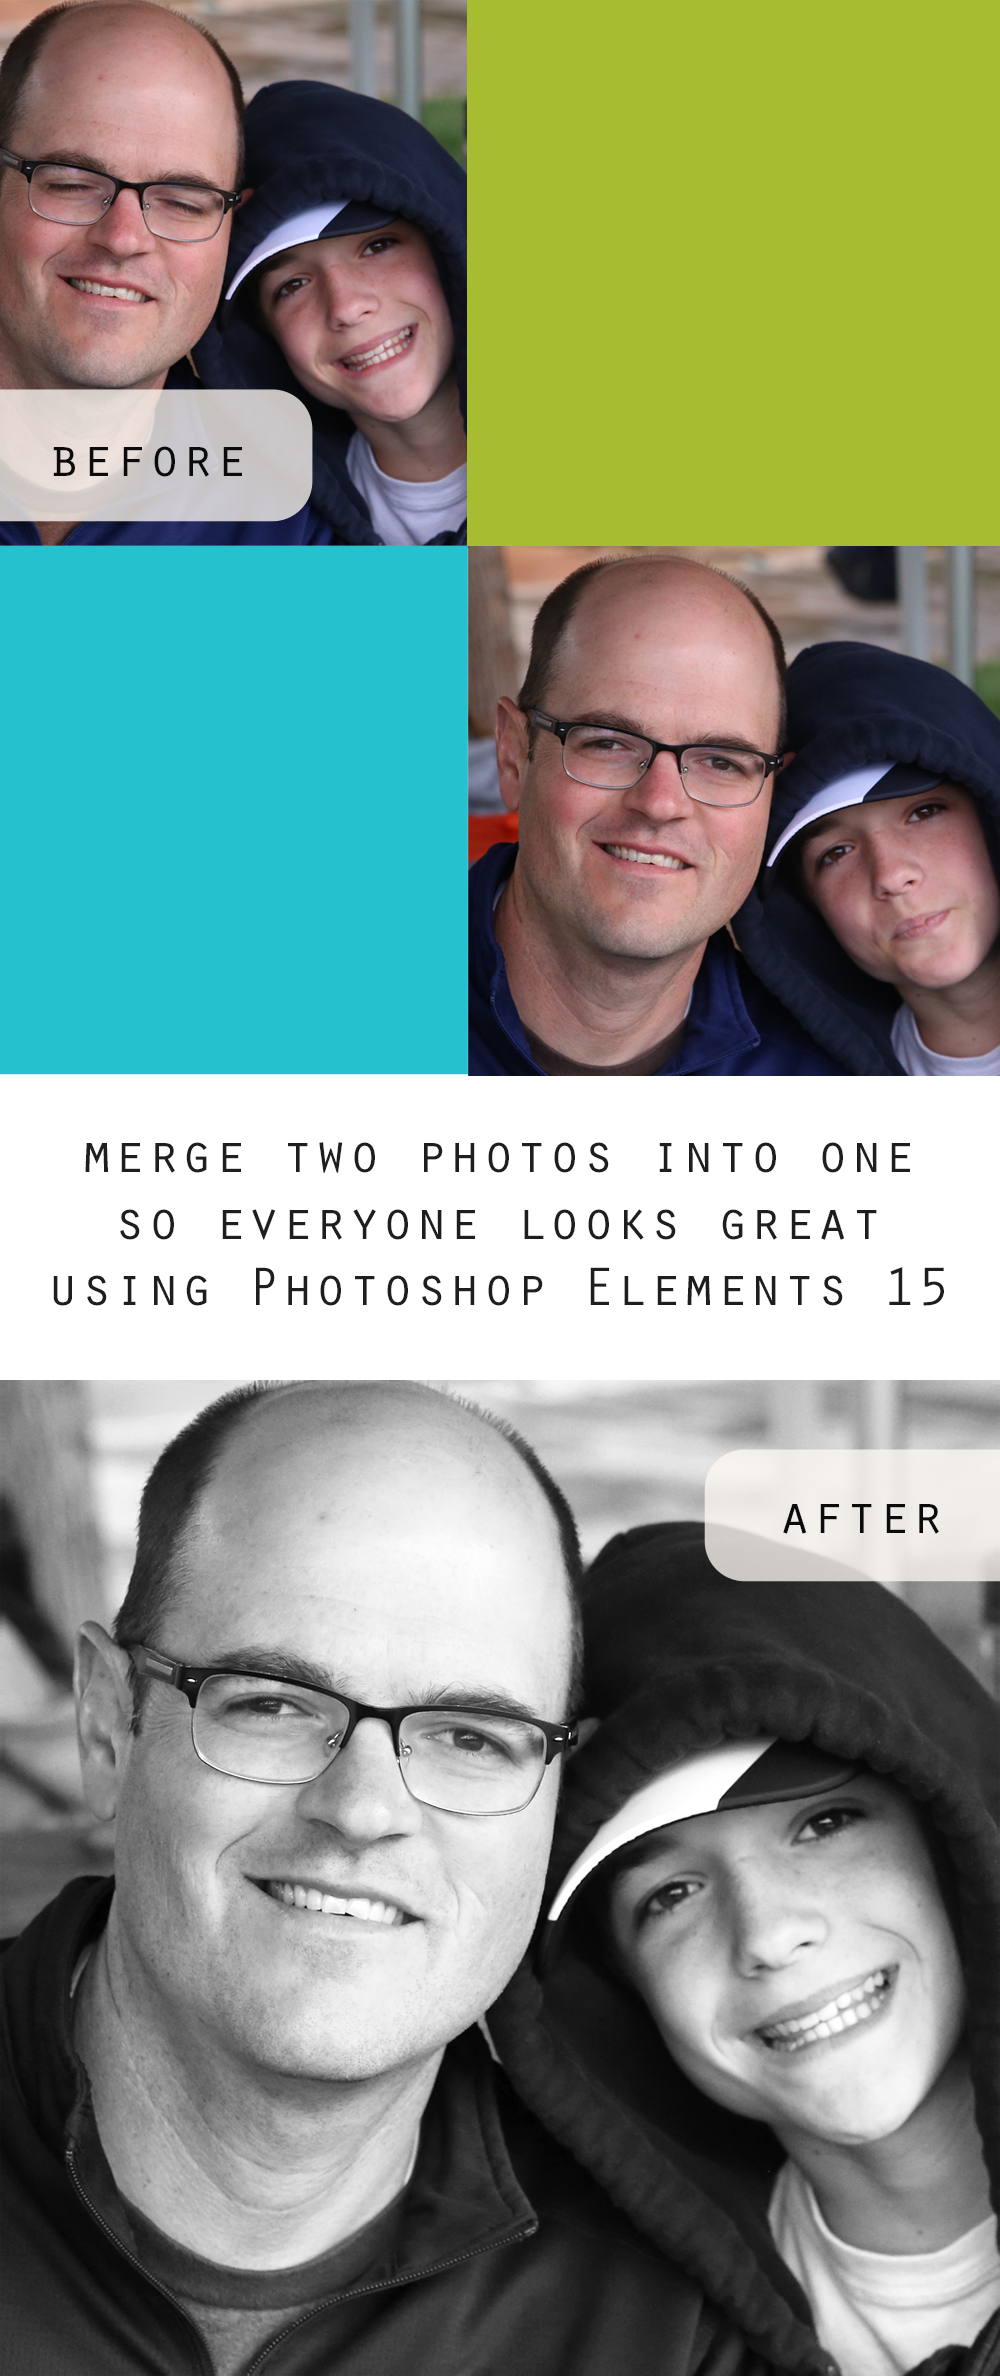 You won't believe how easy it is to merge two photos into one to make sure everyone looks great using Photoshop Elements 15!